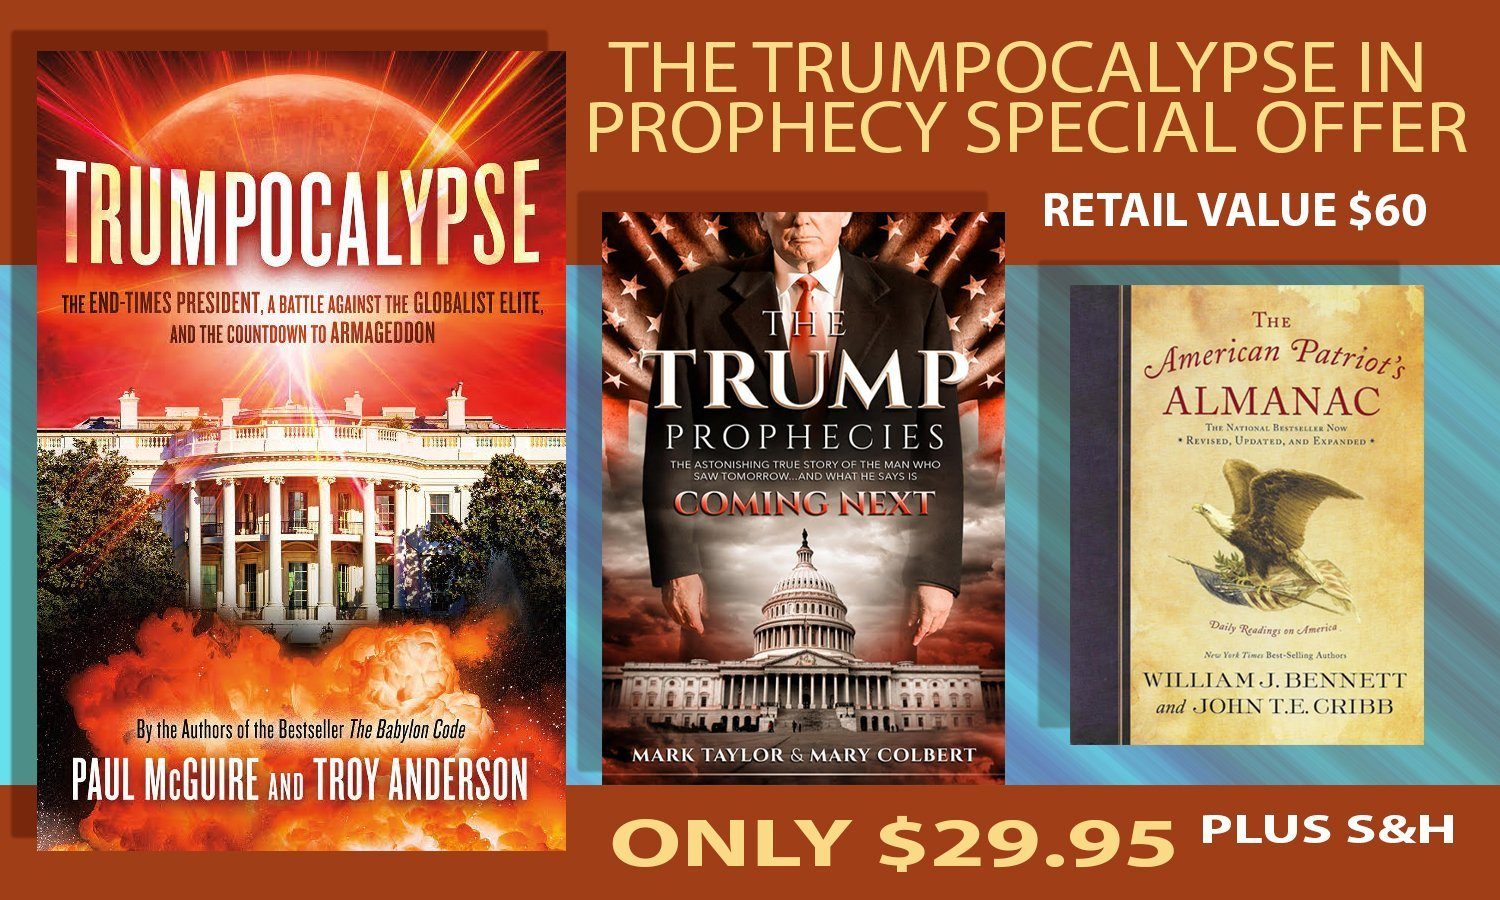 "FREE! GET MARK TAYLOR'S BEST-SELLING BOOK ""THE TRUMP PROPHECIES"" WITH ""TRUMPOCALYPSE""!"